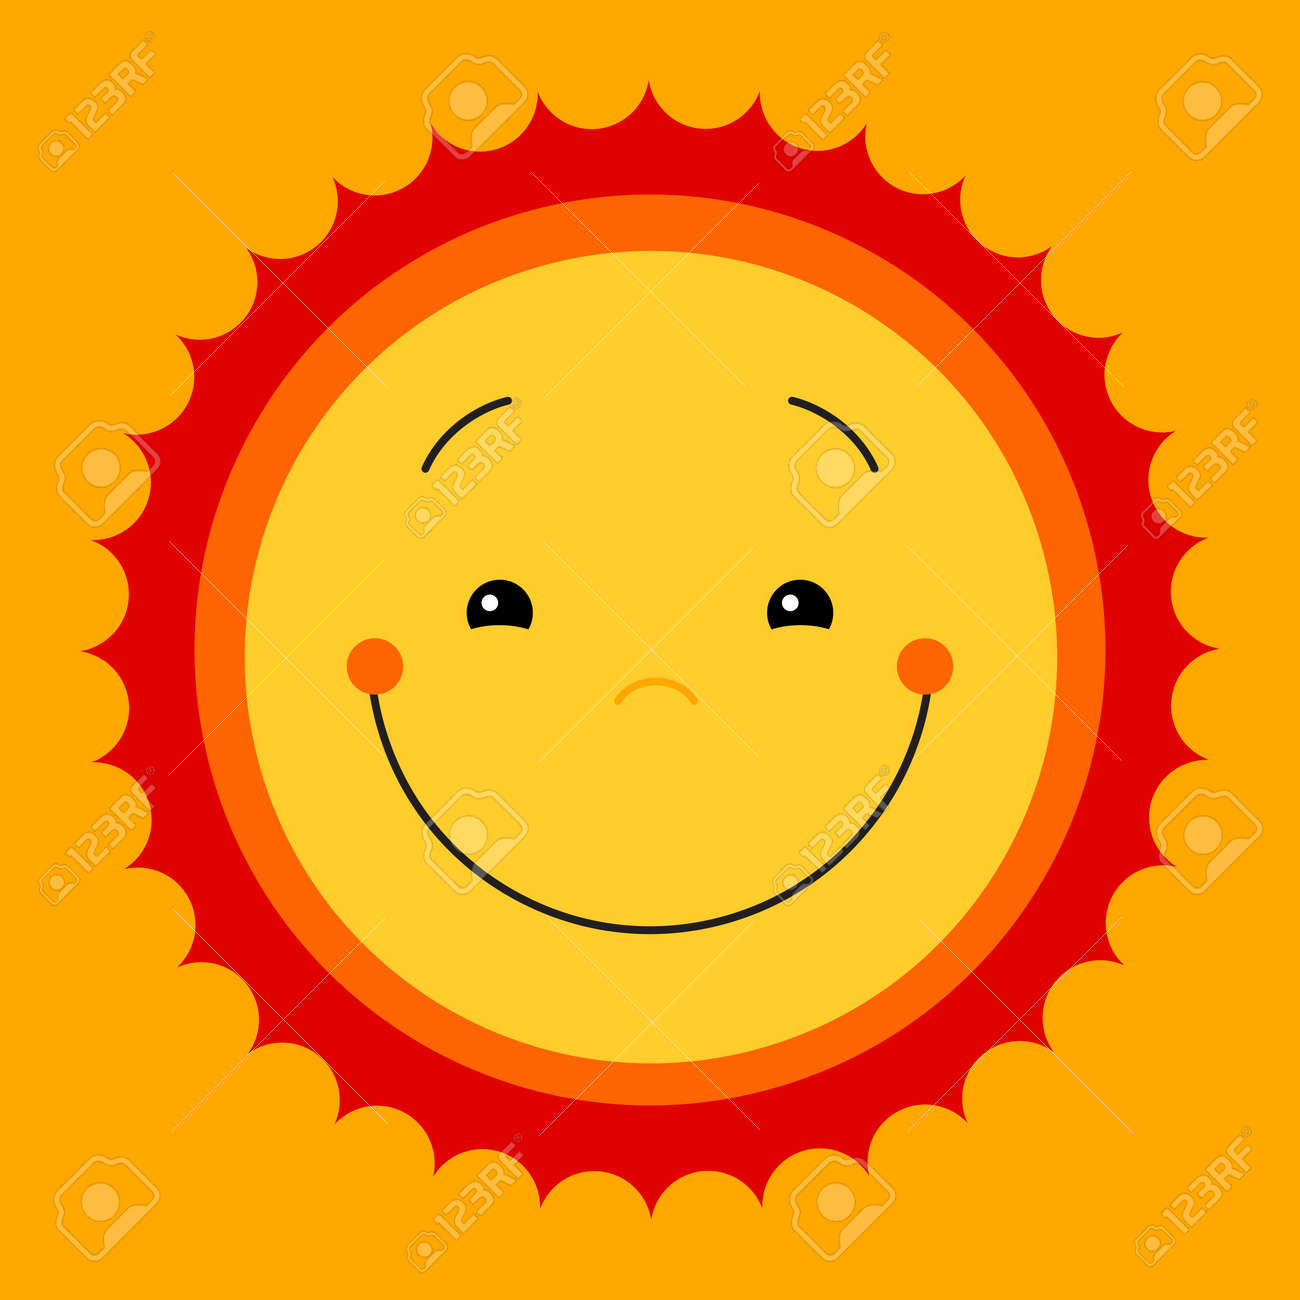 Vector Modern Yellow Smiling From Ear To Ear Fun Happy Sun Sign